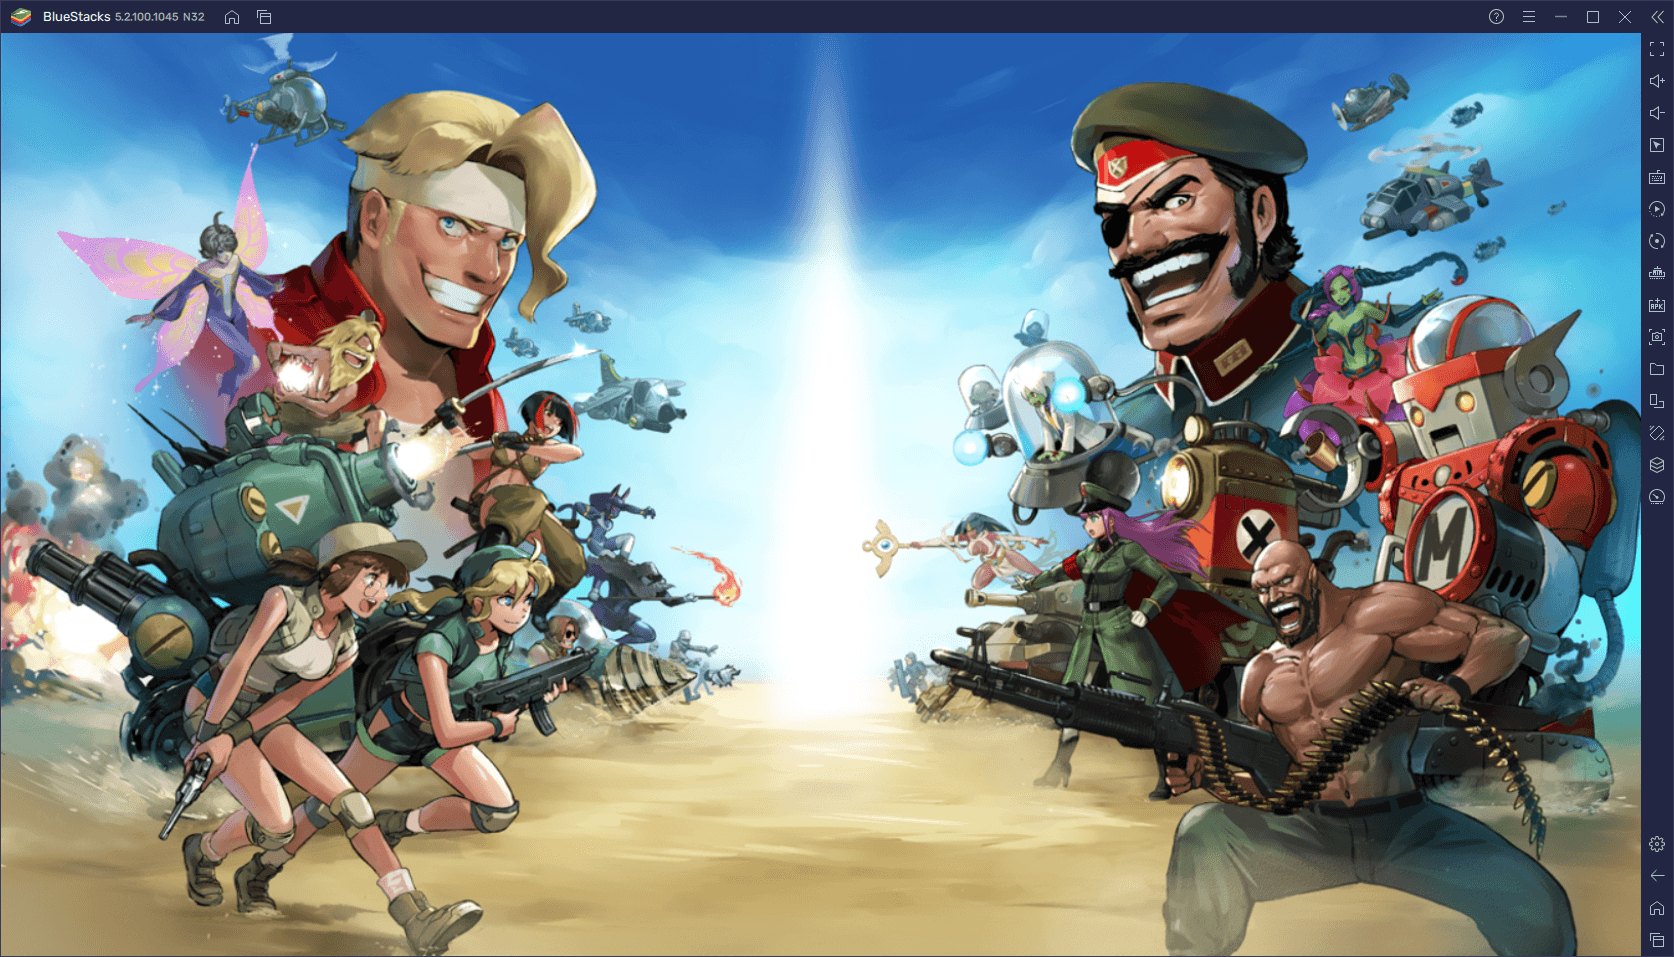 The Best Tips, Tricks, and Strategies for Metal Slug: Commander on PC